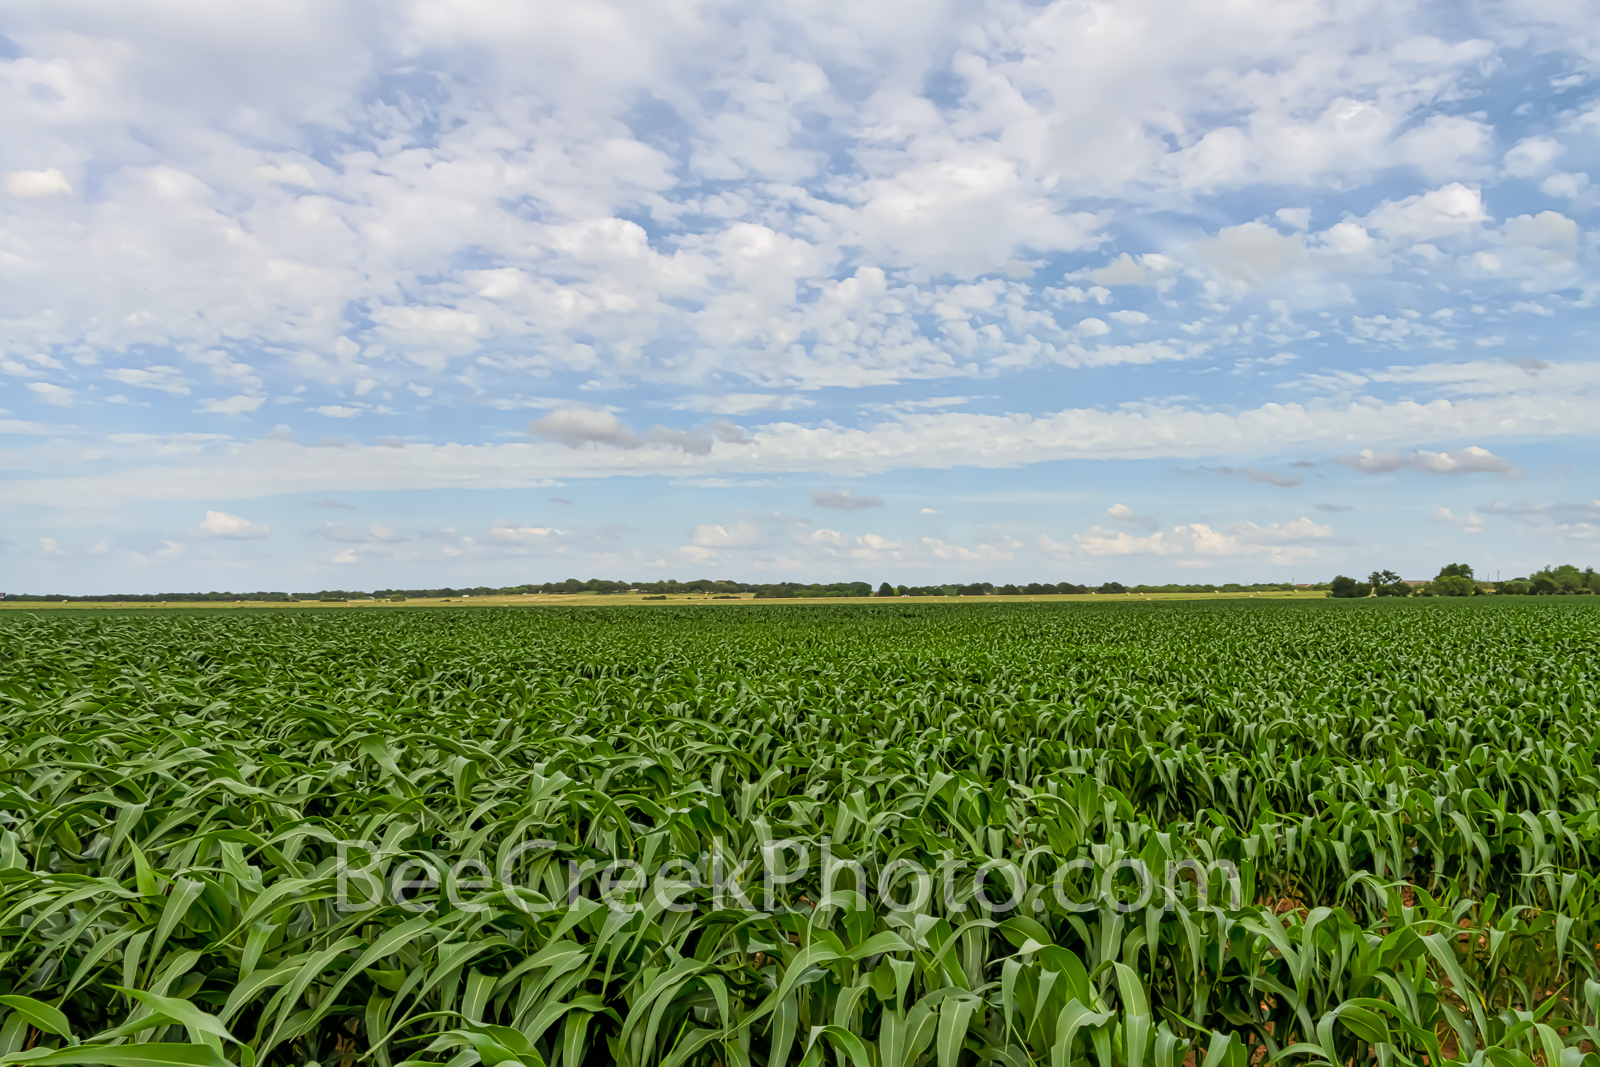 Texas Farmland Landscape - Texas farmland with a crop of corn growing in the Texas hill country.  Texas has a lot of different...